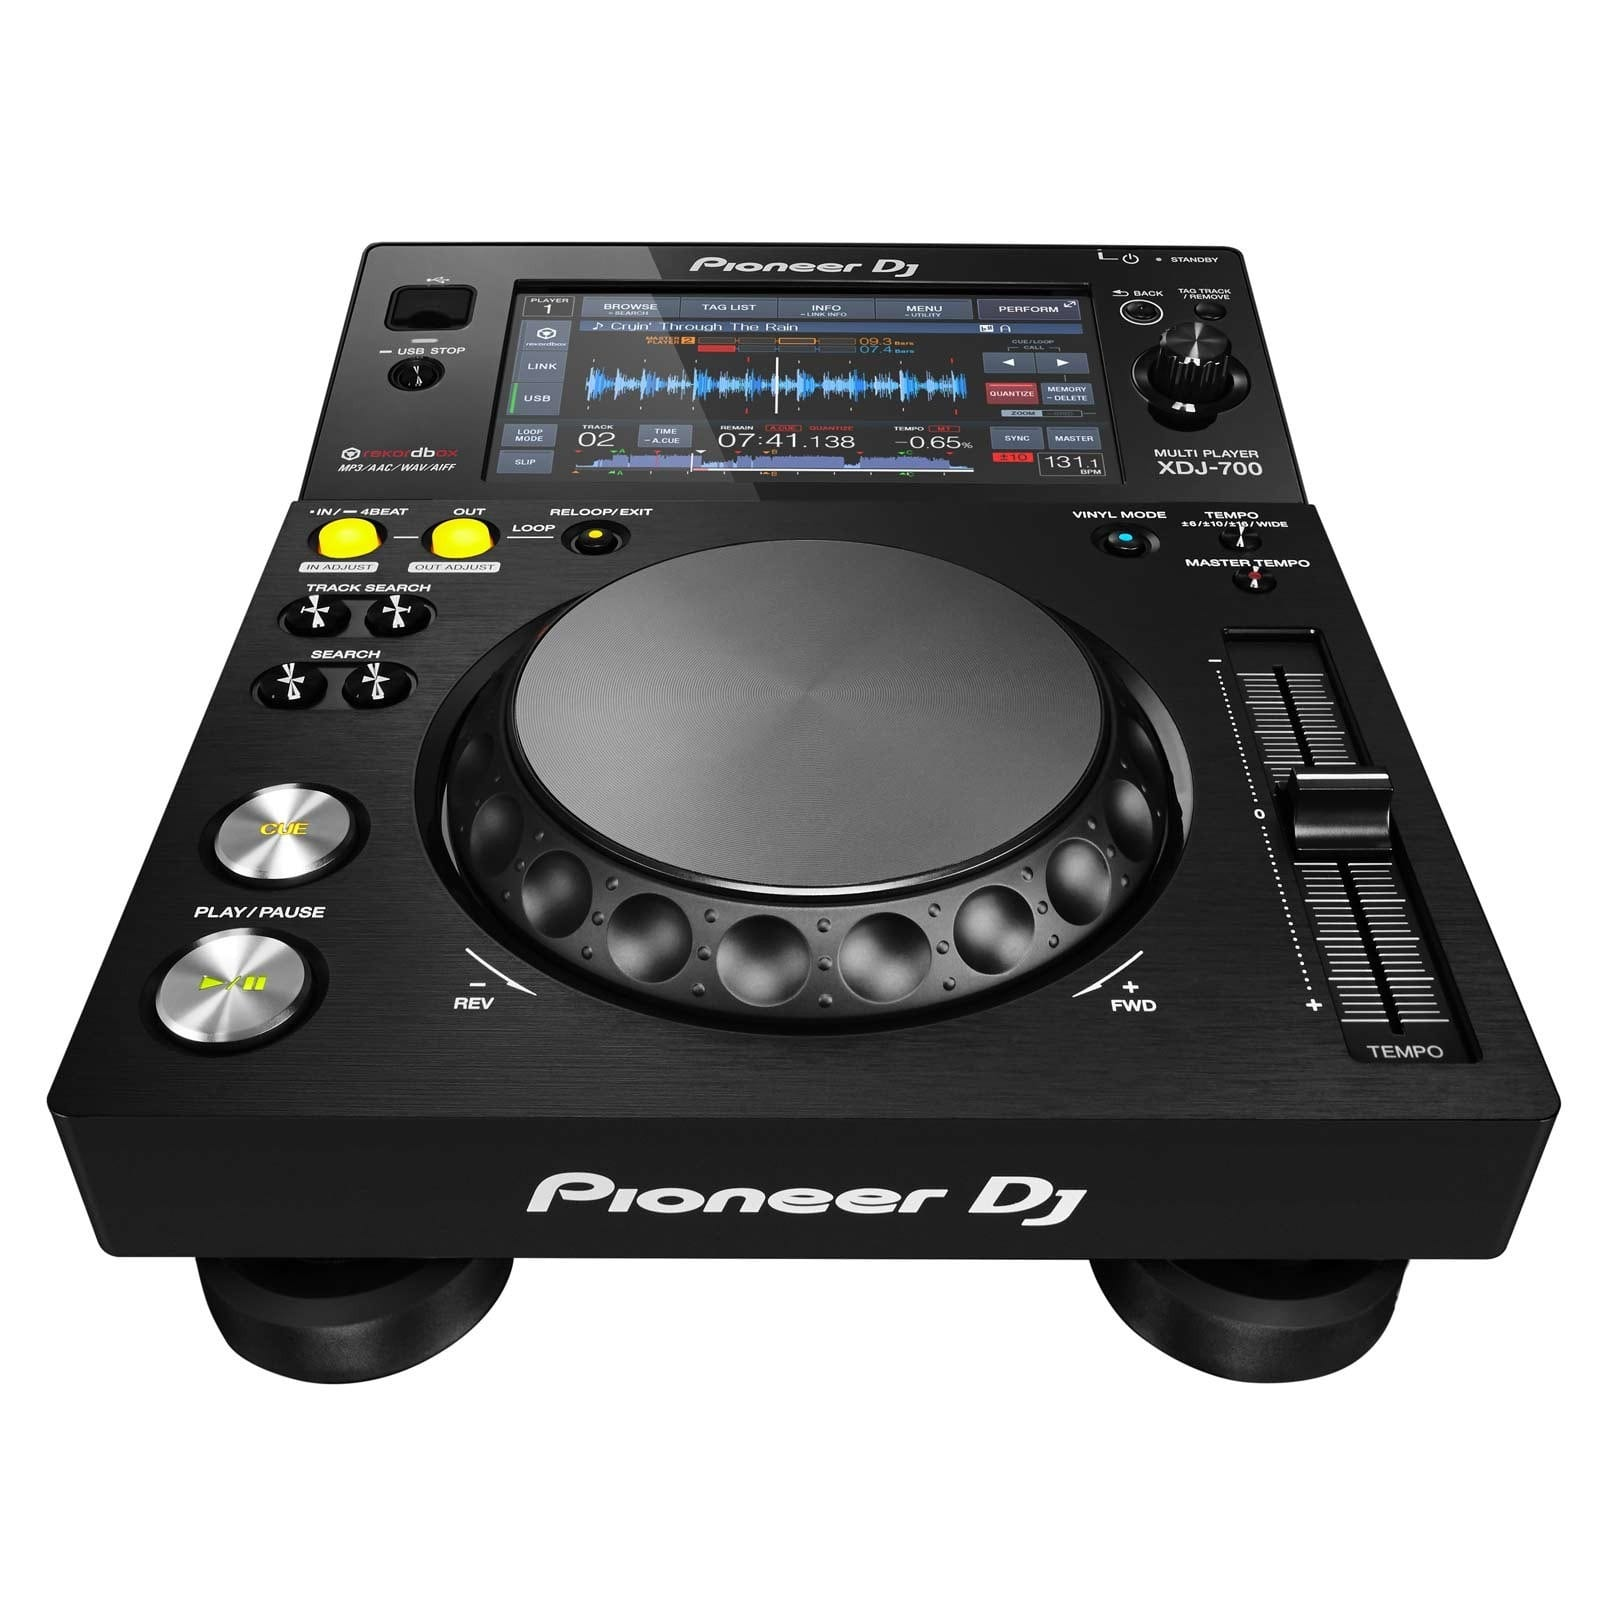 pioneer-xdj-700-rekordbox-compatible-compact-digital-deck-b97